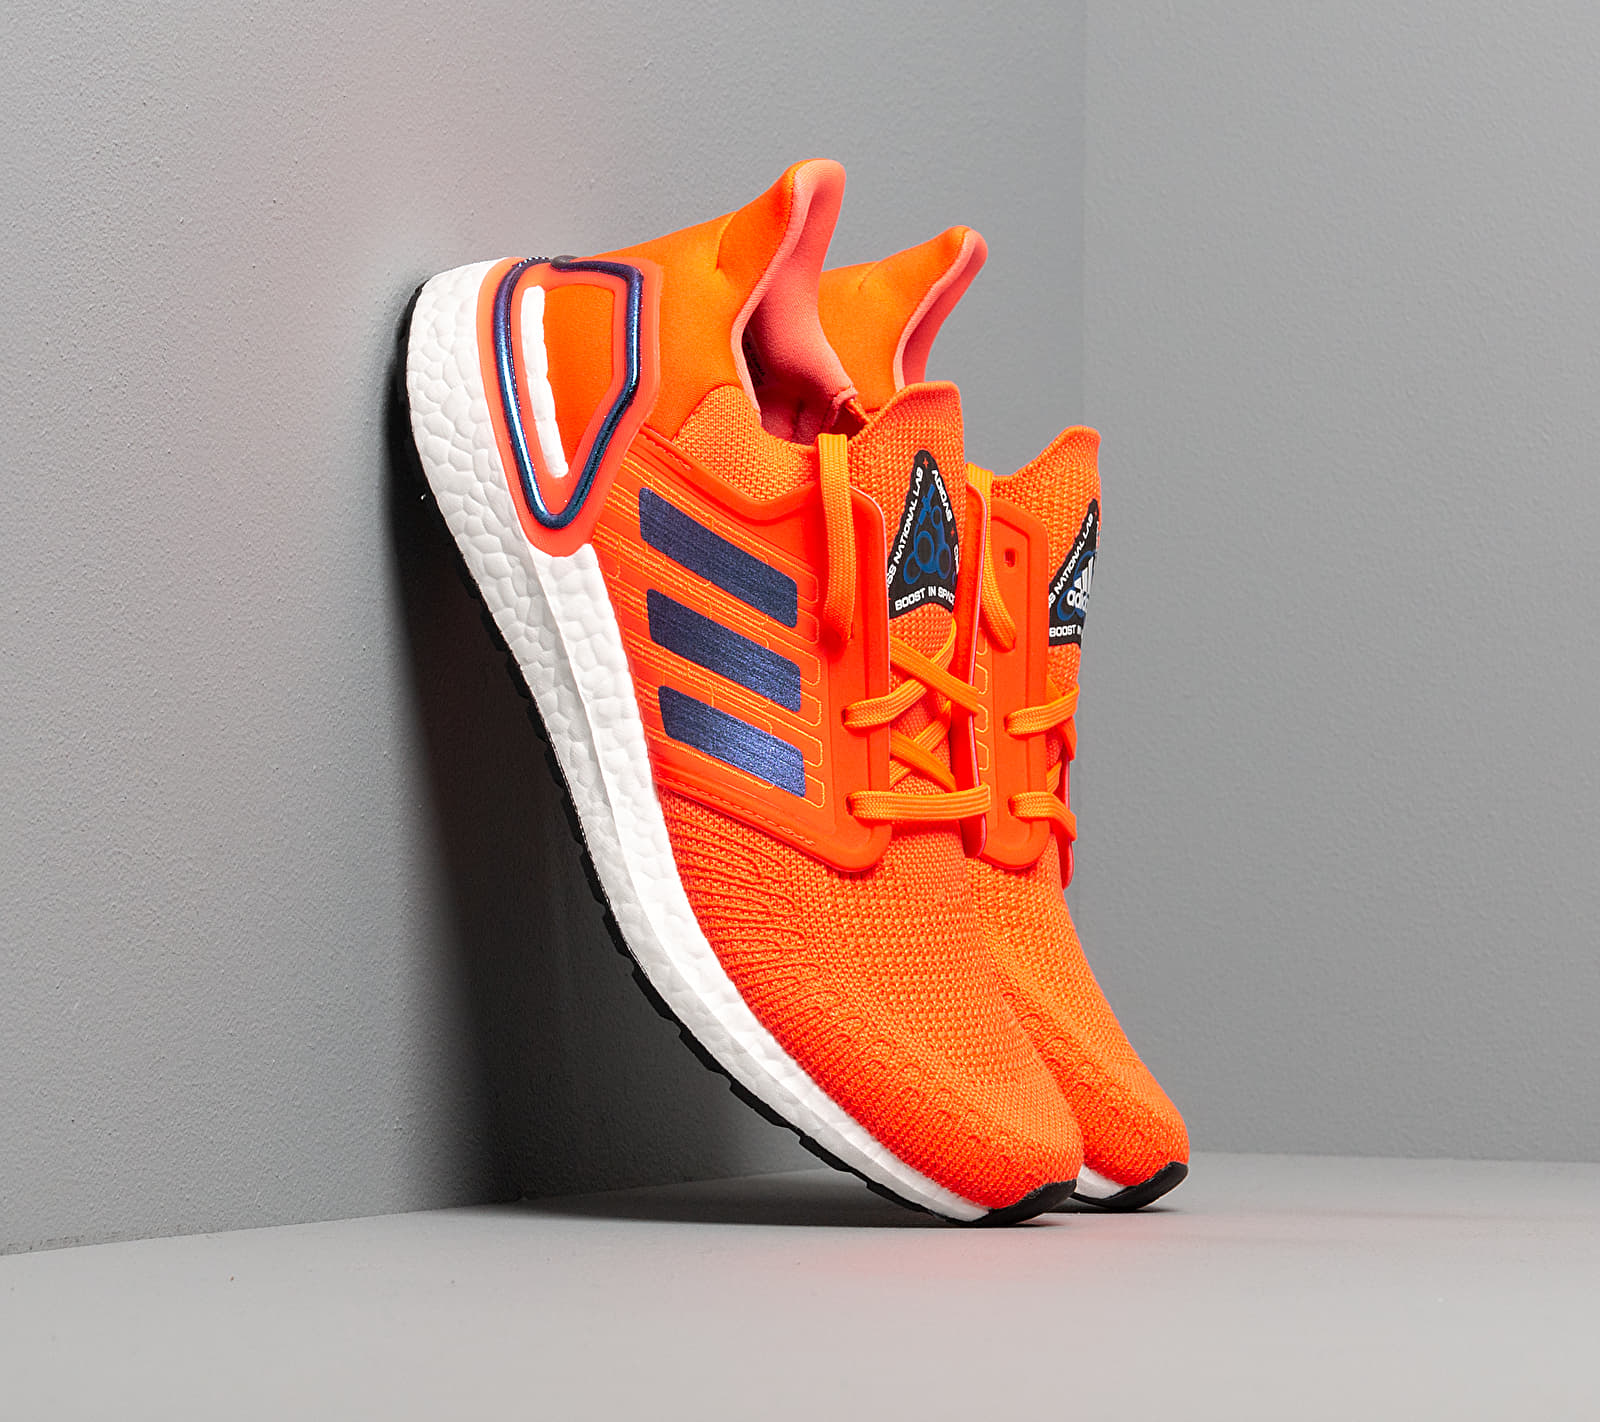 adidas UltraBOOST 20 Solid Red/ Blue Vime/ Ftw White EUR 40